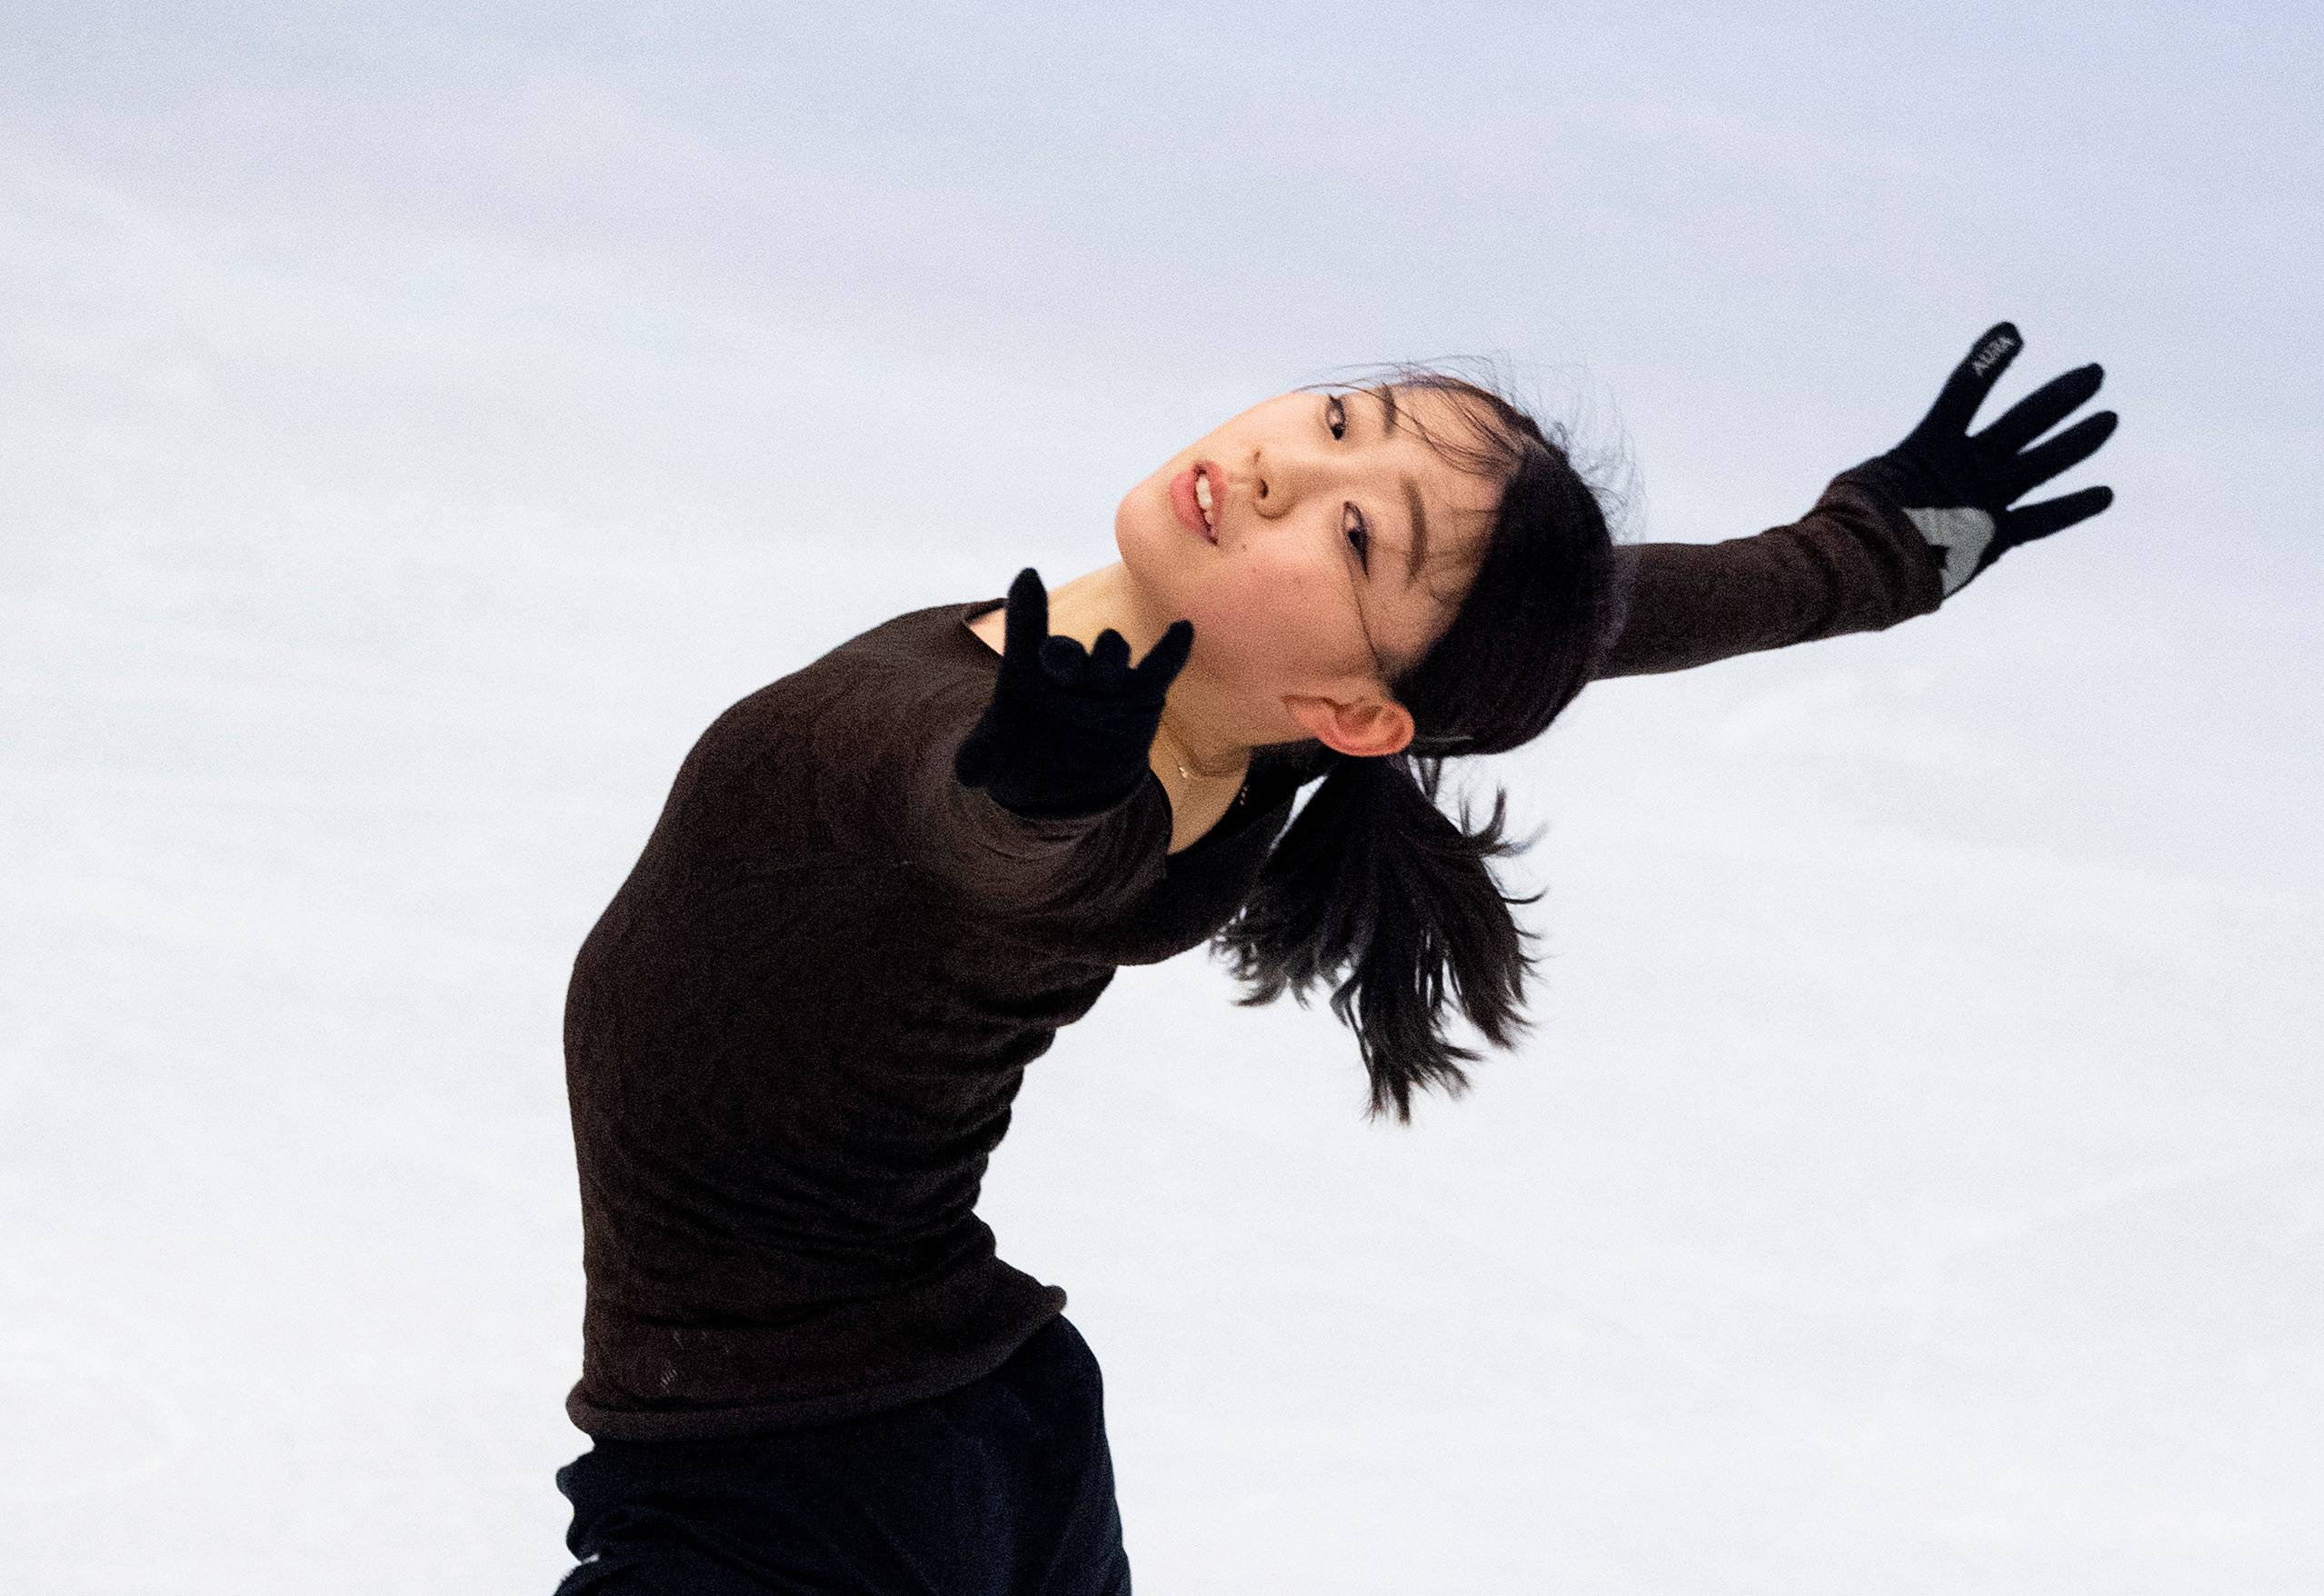 Rika Kihira trains ahead of the World Figure Skating Championships on March 22 in Stockholm.   TT NEWS AGENCY / VIA REUTERS